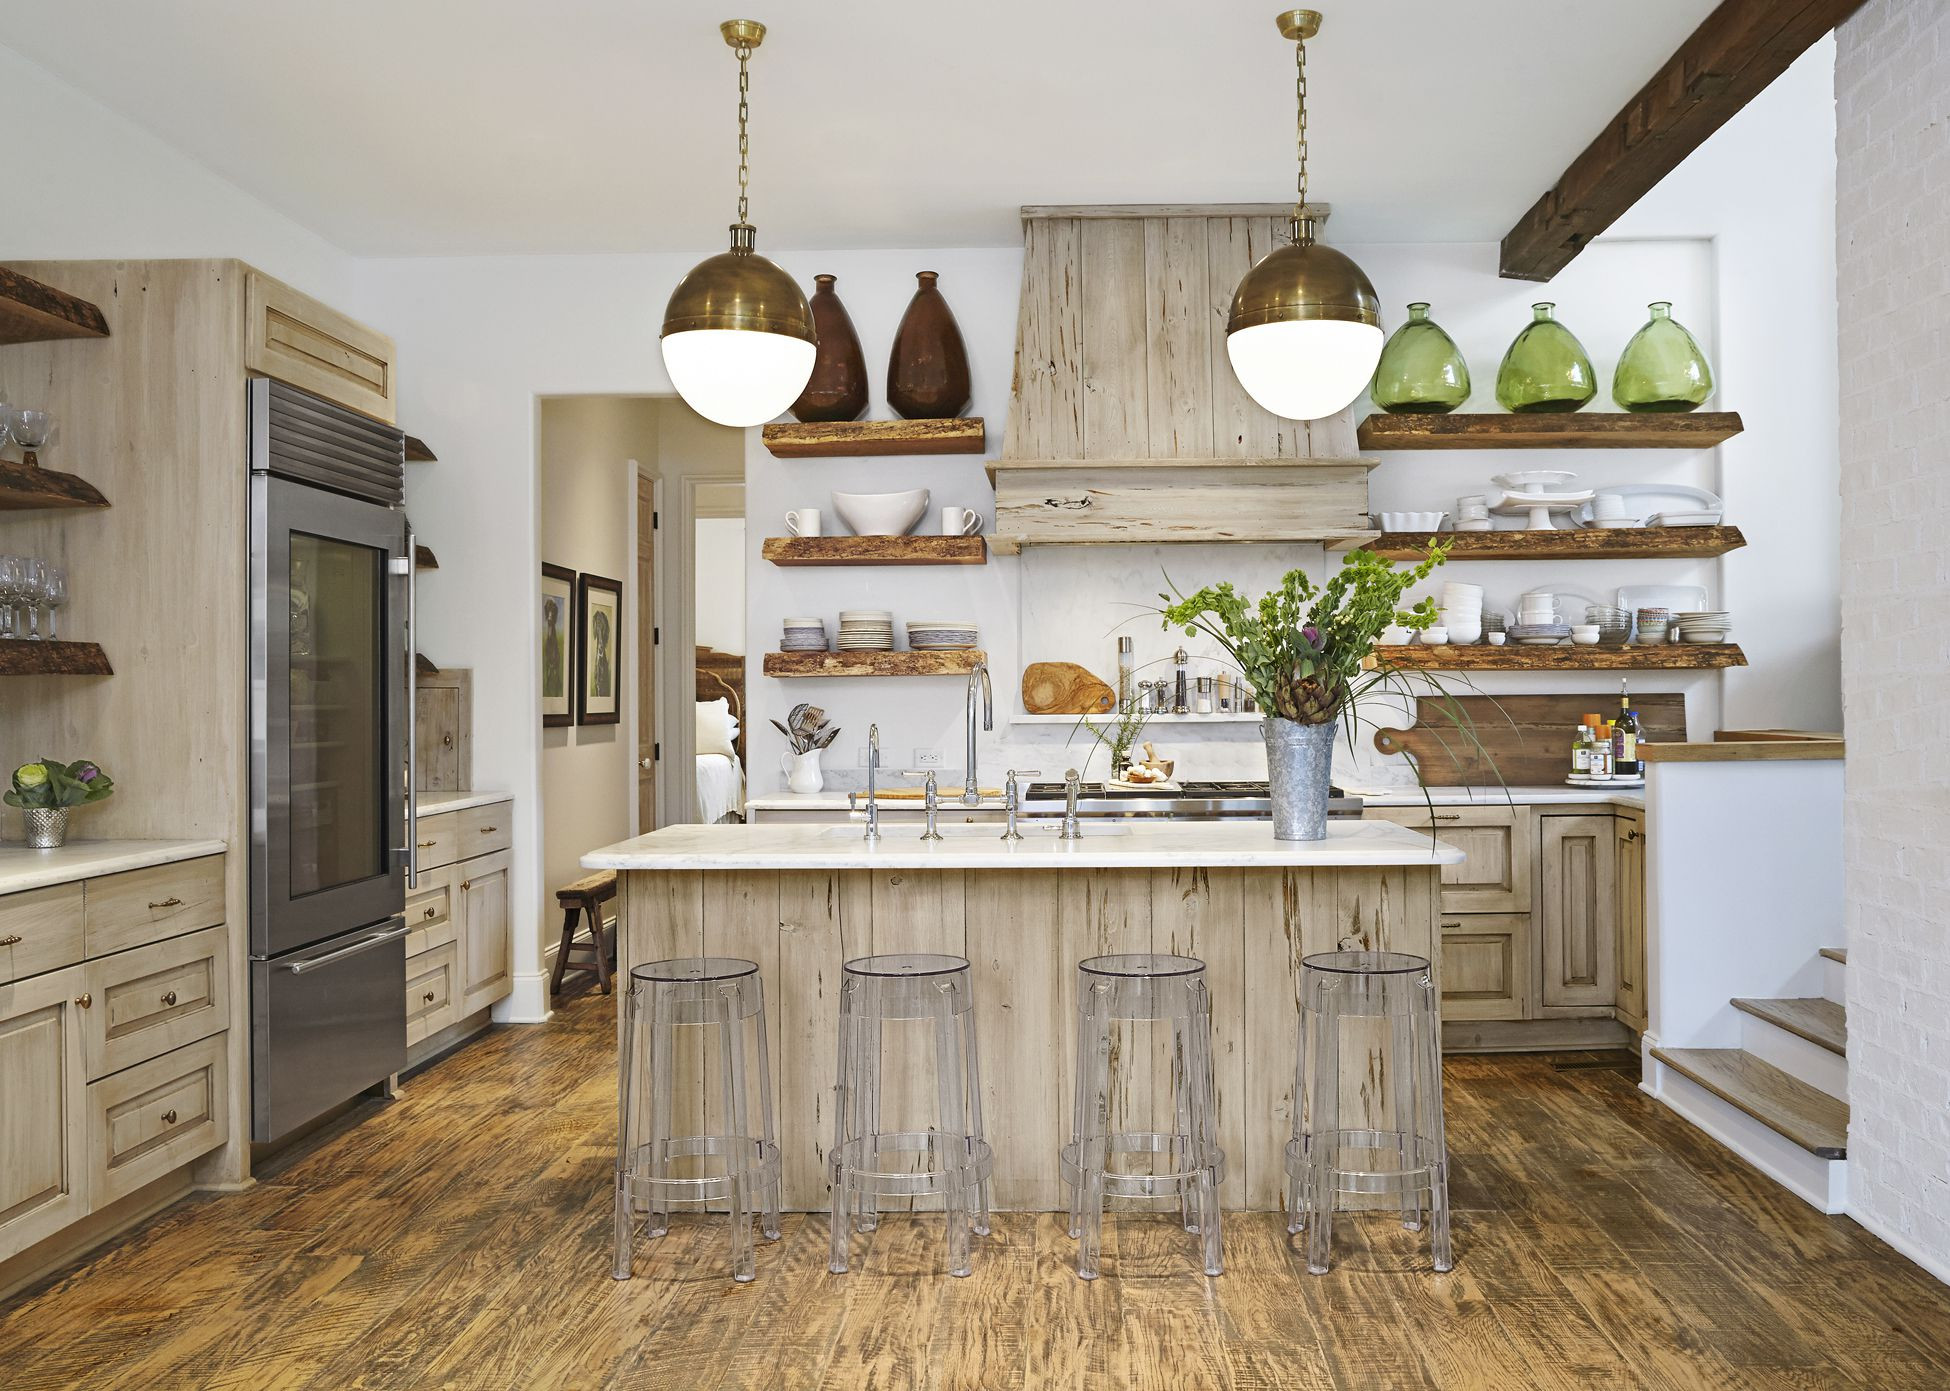 hardwood floor kitchen cabinet combinations of 8 gorgeous kitchen trends that will be huge in 2018 for 1483474851 kitchen reinvention reclaimed wood 0117